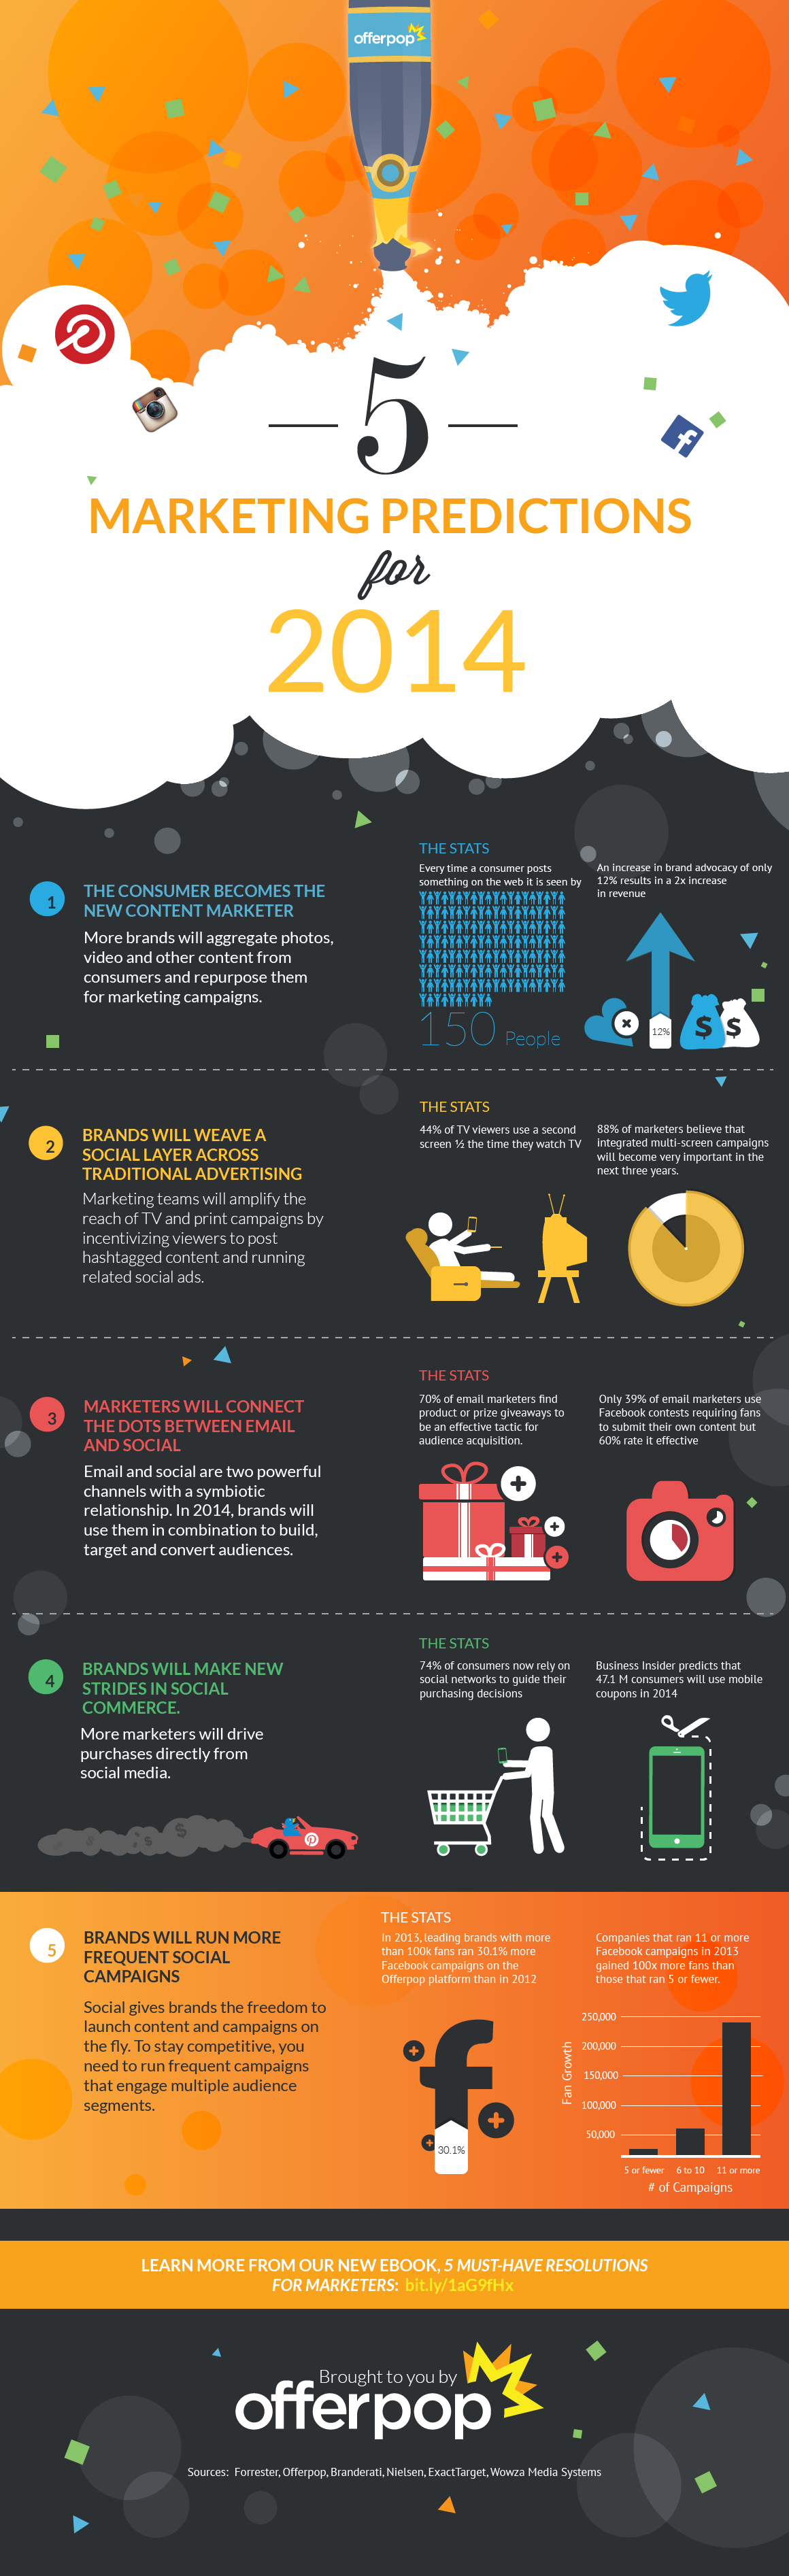 Top 5 Marketing Predictions for 2014 [INFOGRAPHIC]